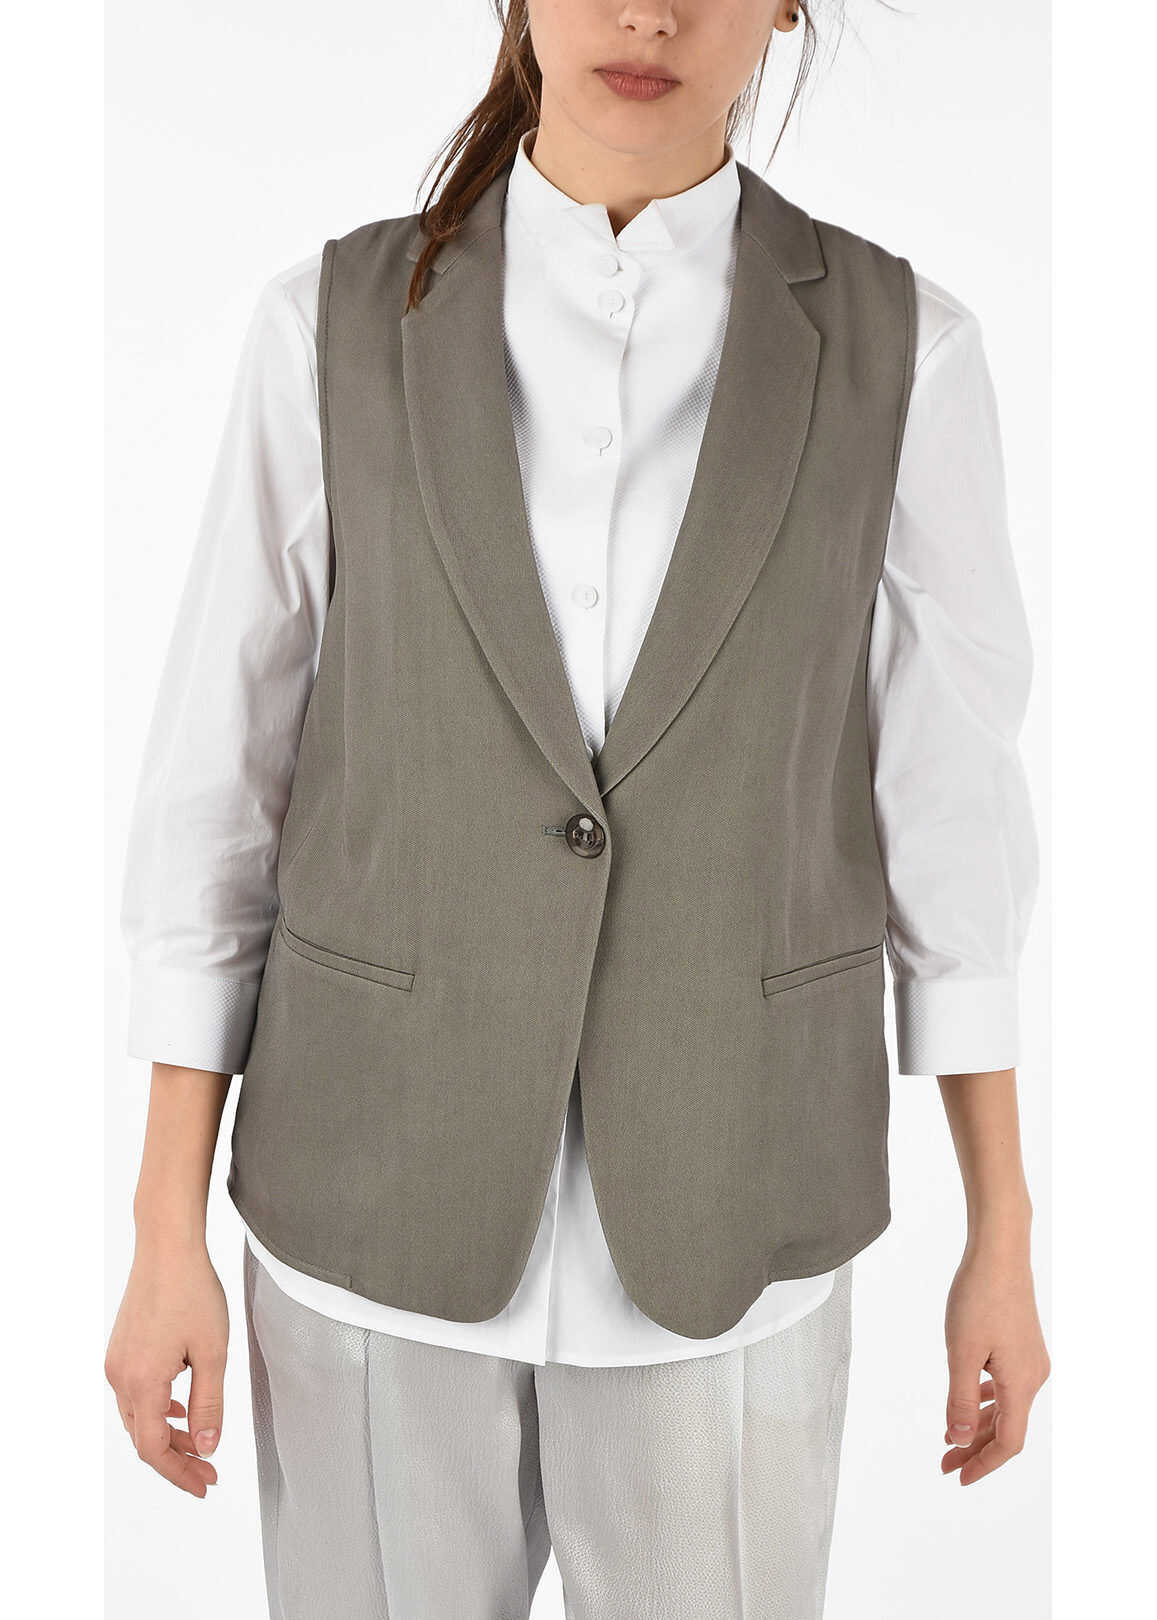 Armani EMPORIO Blouse with Gilet MULTICOLOR